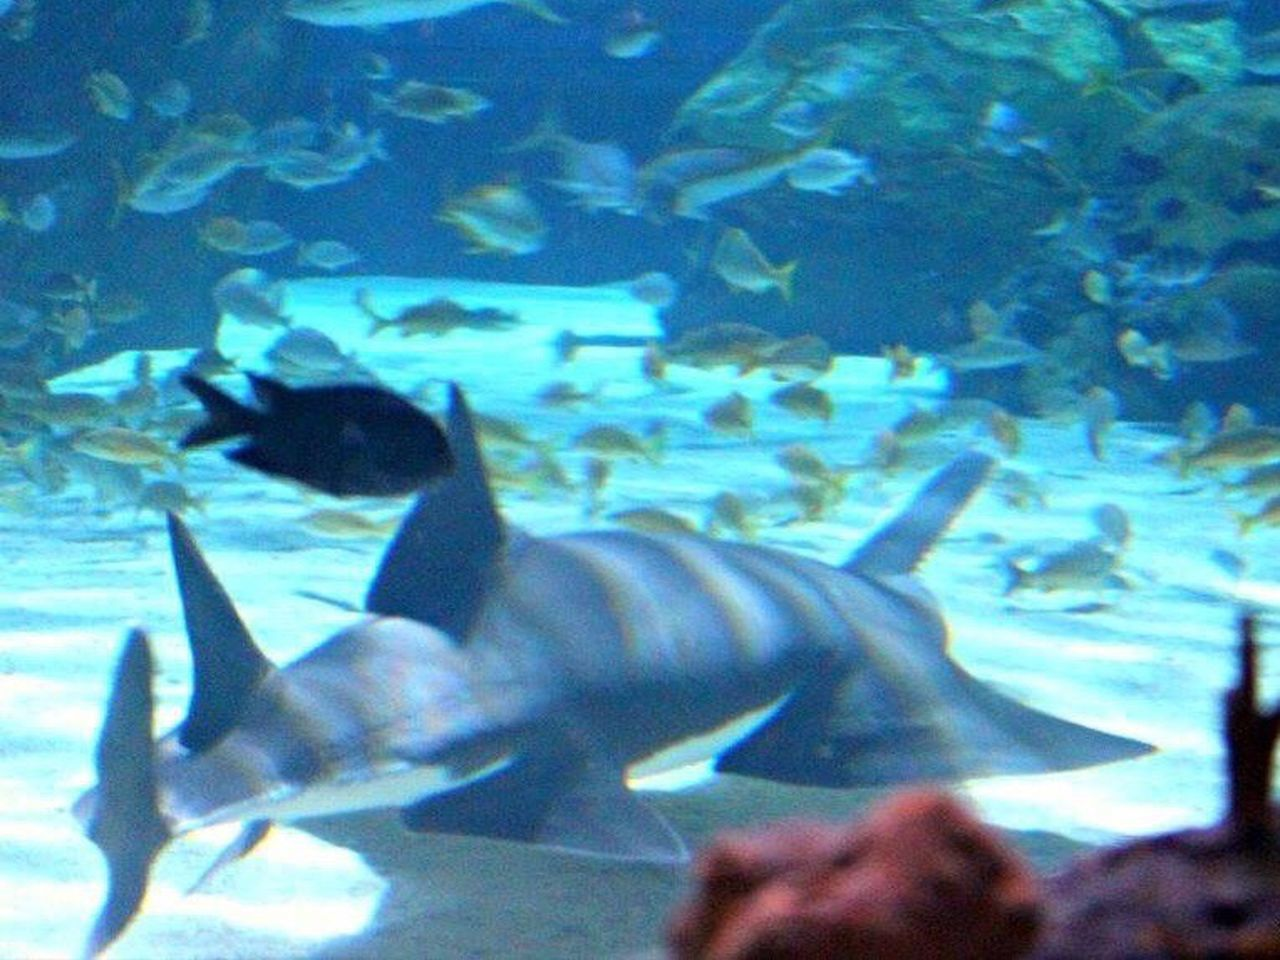 Sawfish Aquarium Fish Water Animals In Captivity Underwater Swimming Close-up